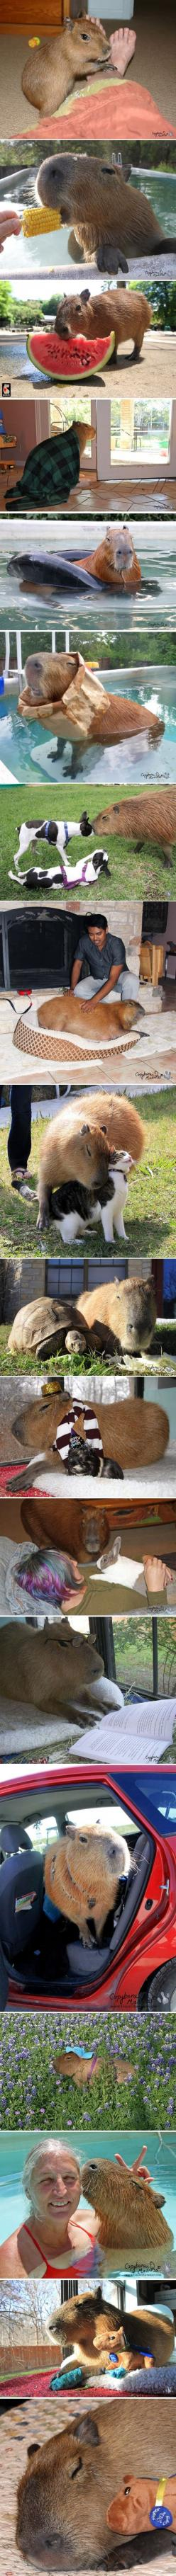 The Internet needs more capybaras…: Capybara Funny, Animals, Critter, Pet Capybaras, Capybaras Dammit, Capybara Pet, Internet